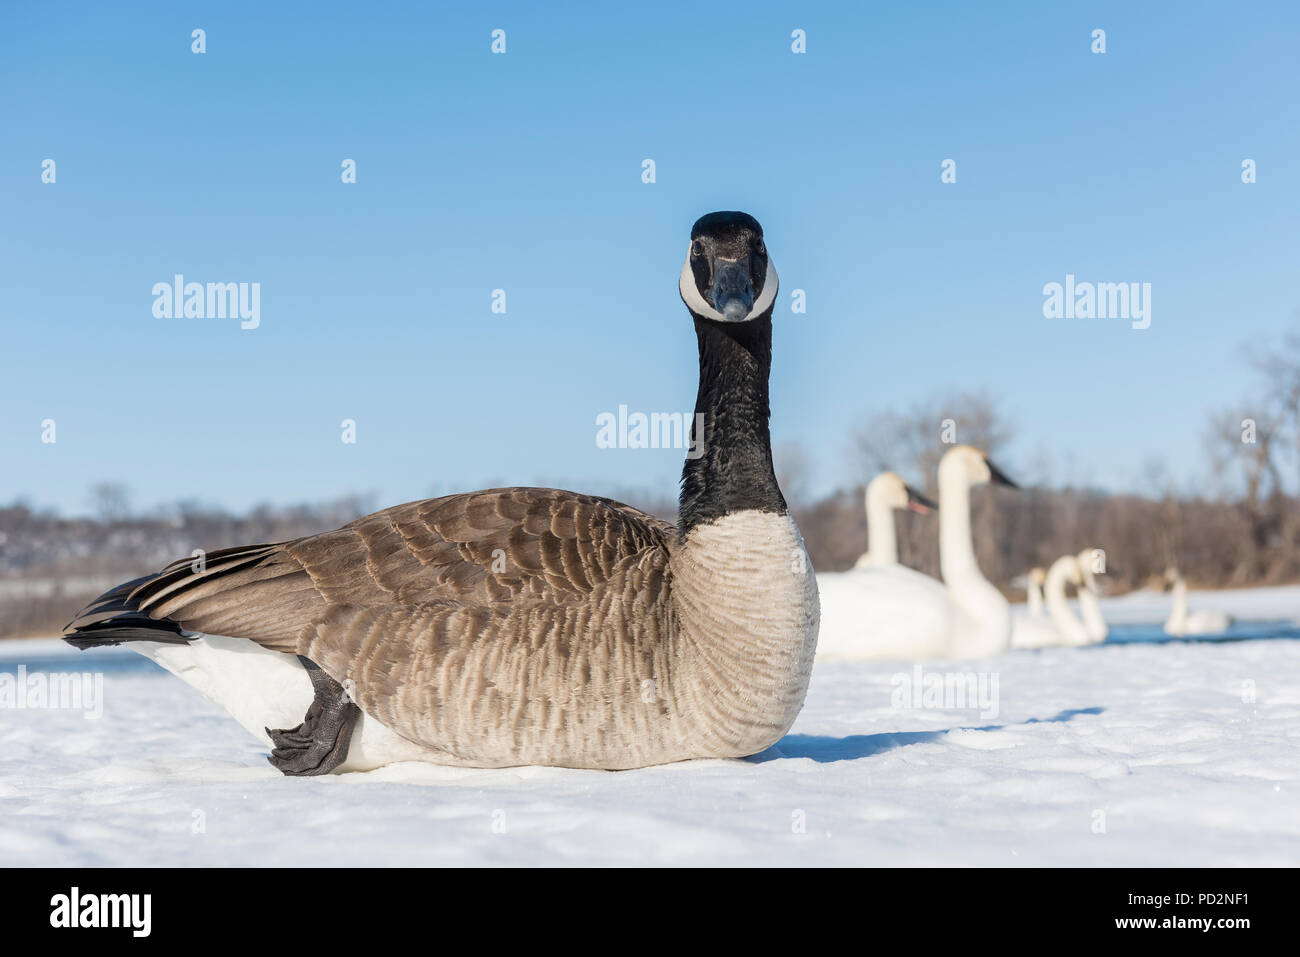 Canada Goose (Branta canadensis) and Trumpeter swans (Cygnus buccinator), St Croix River, WI, USA, by Dominique Braud/Dembinsky Photo Assoc - Stock Image